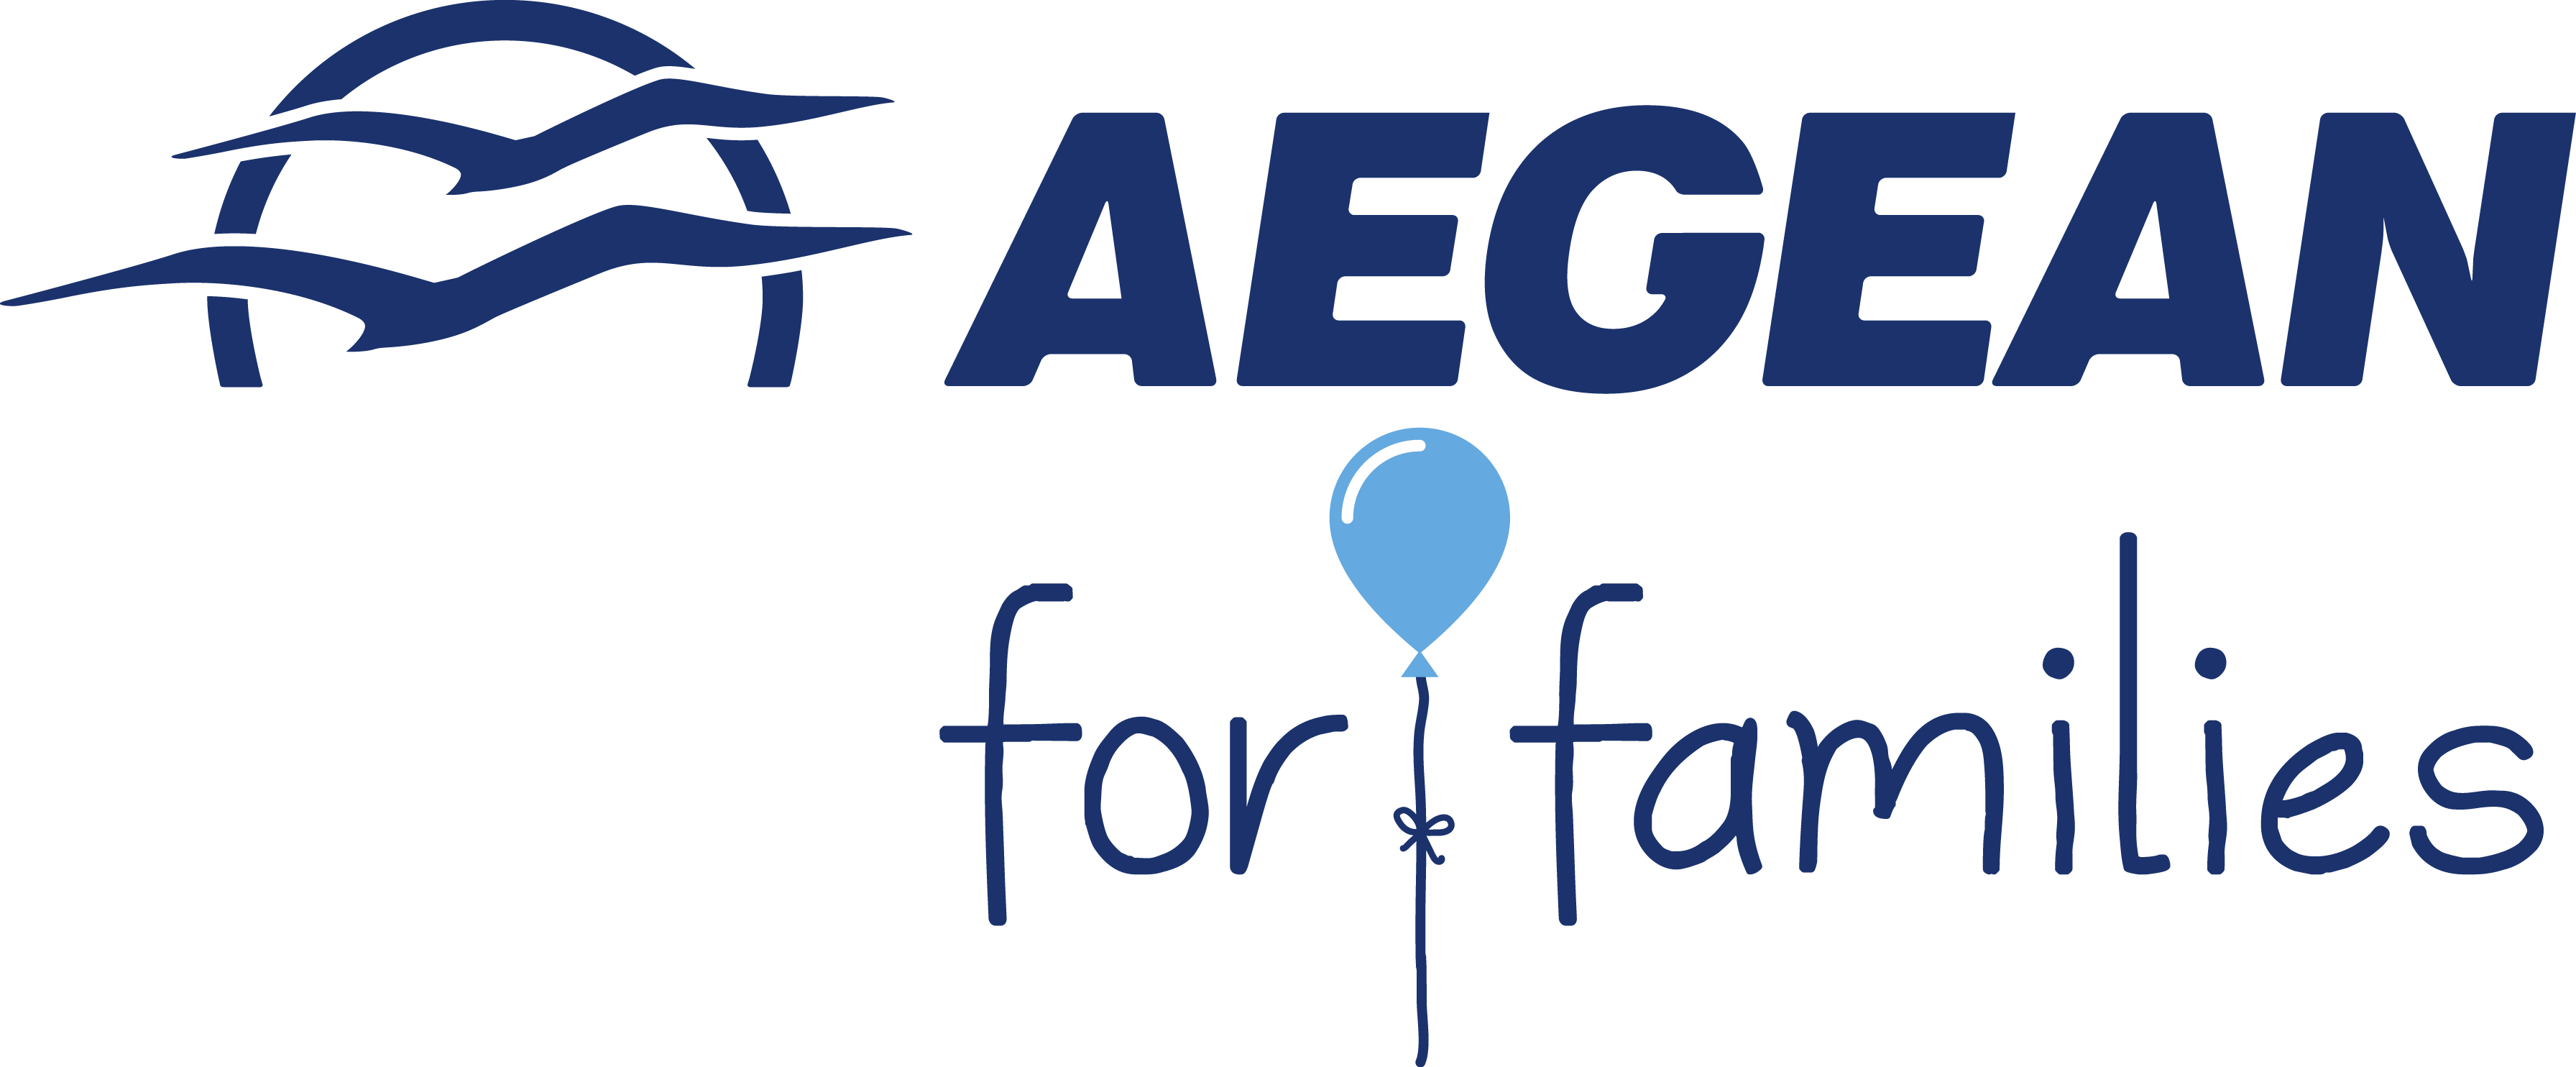 Aegean For Families - New designed Services for families